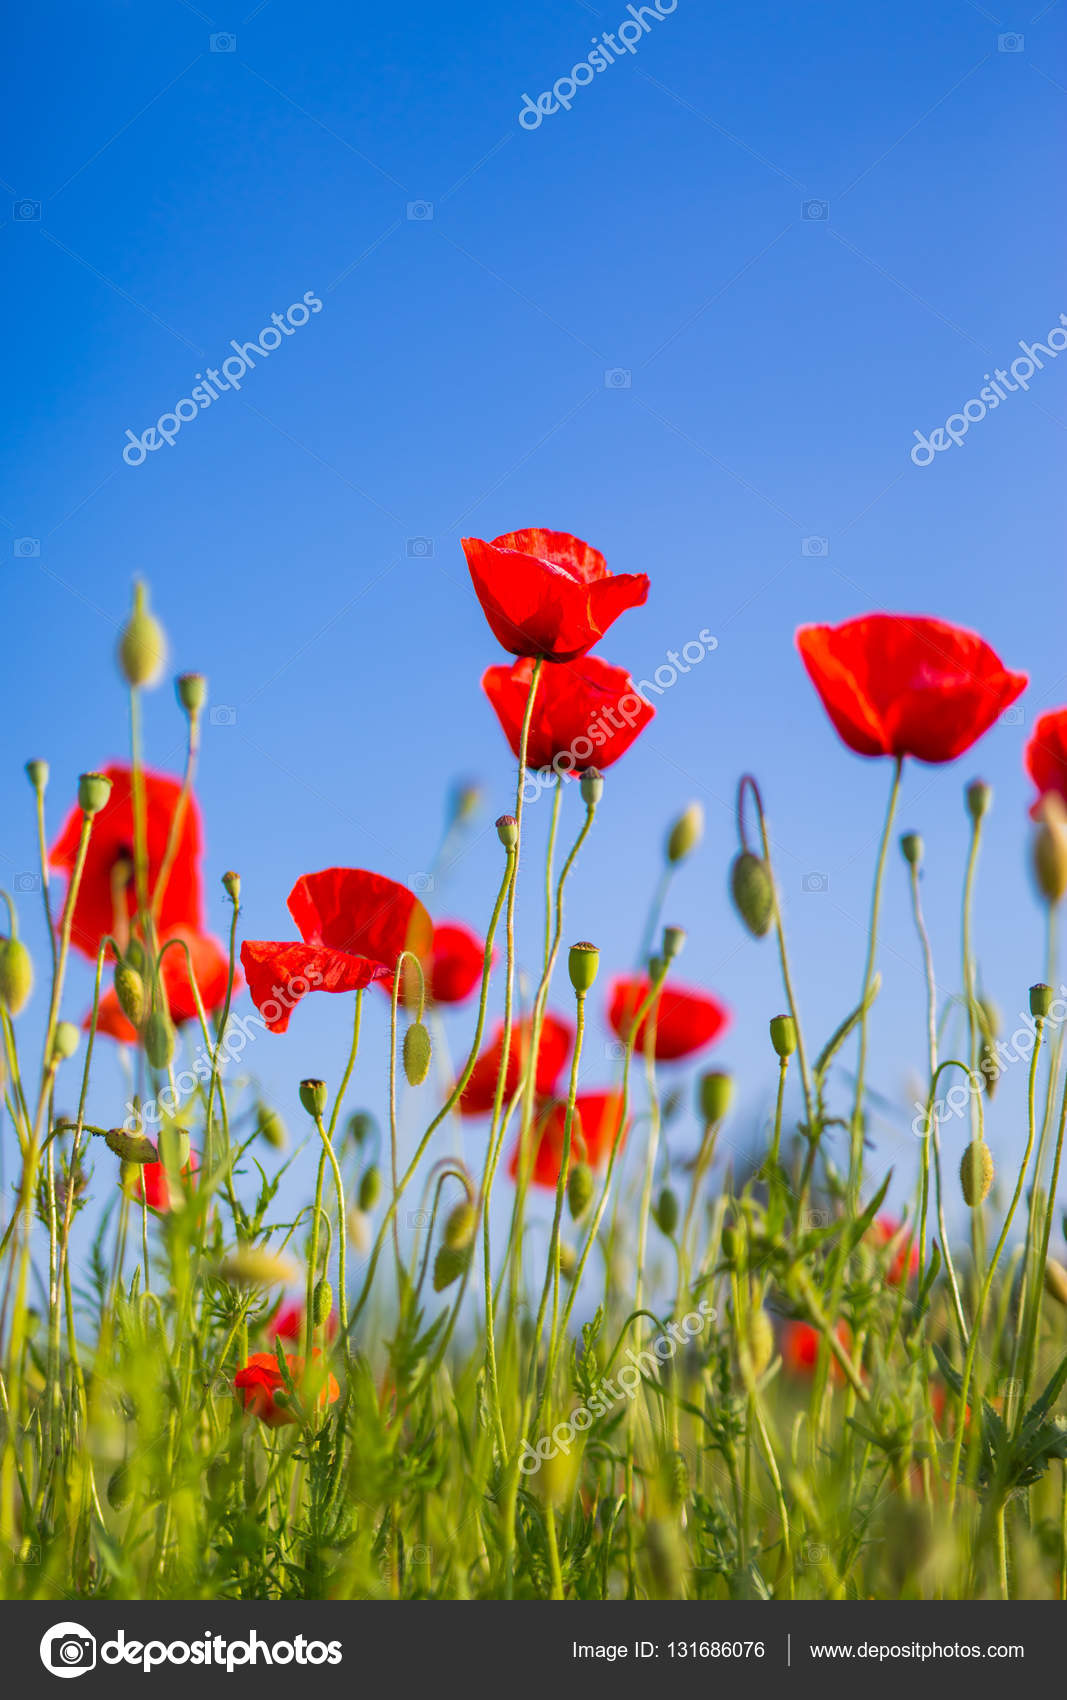 Blue sky red poppy flowers red poppies in the grass at morning blue sky red poppy flowers red poppies in the grass at morning stock photo mightylinksfo